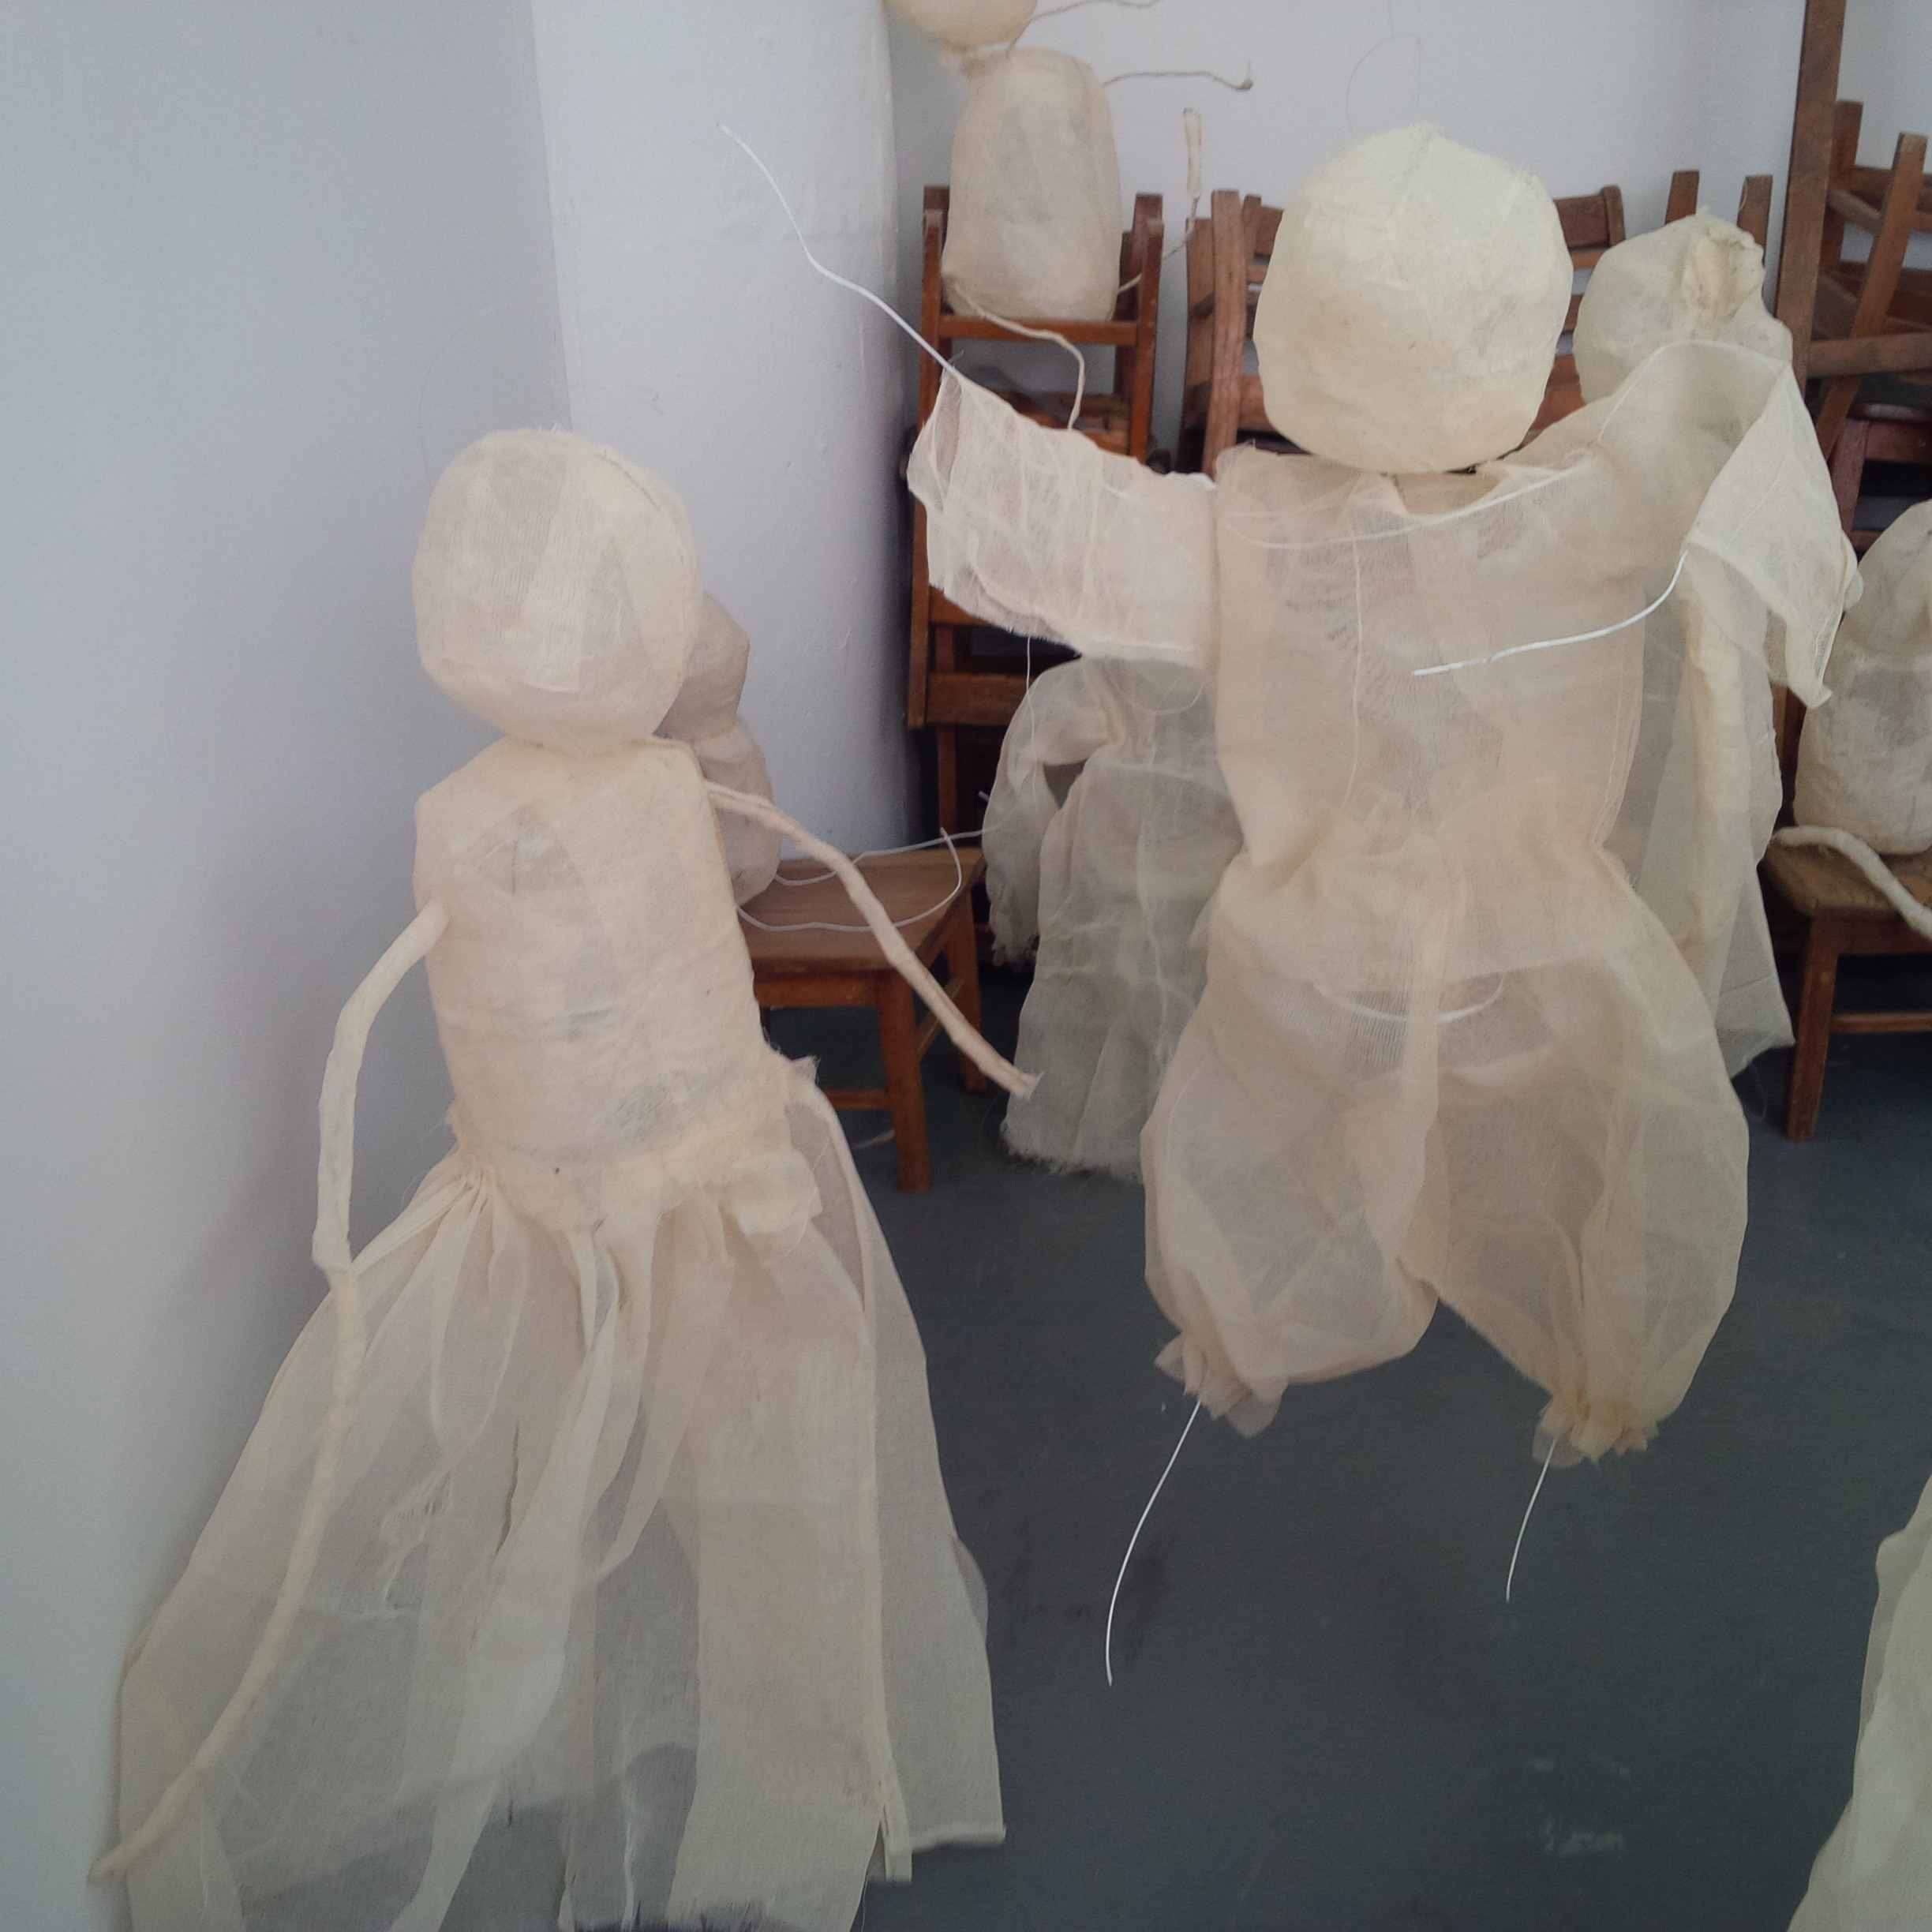 Constance's scrim and wire sculptures similar to the works she is creating for this show.